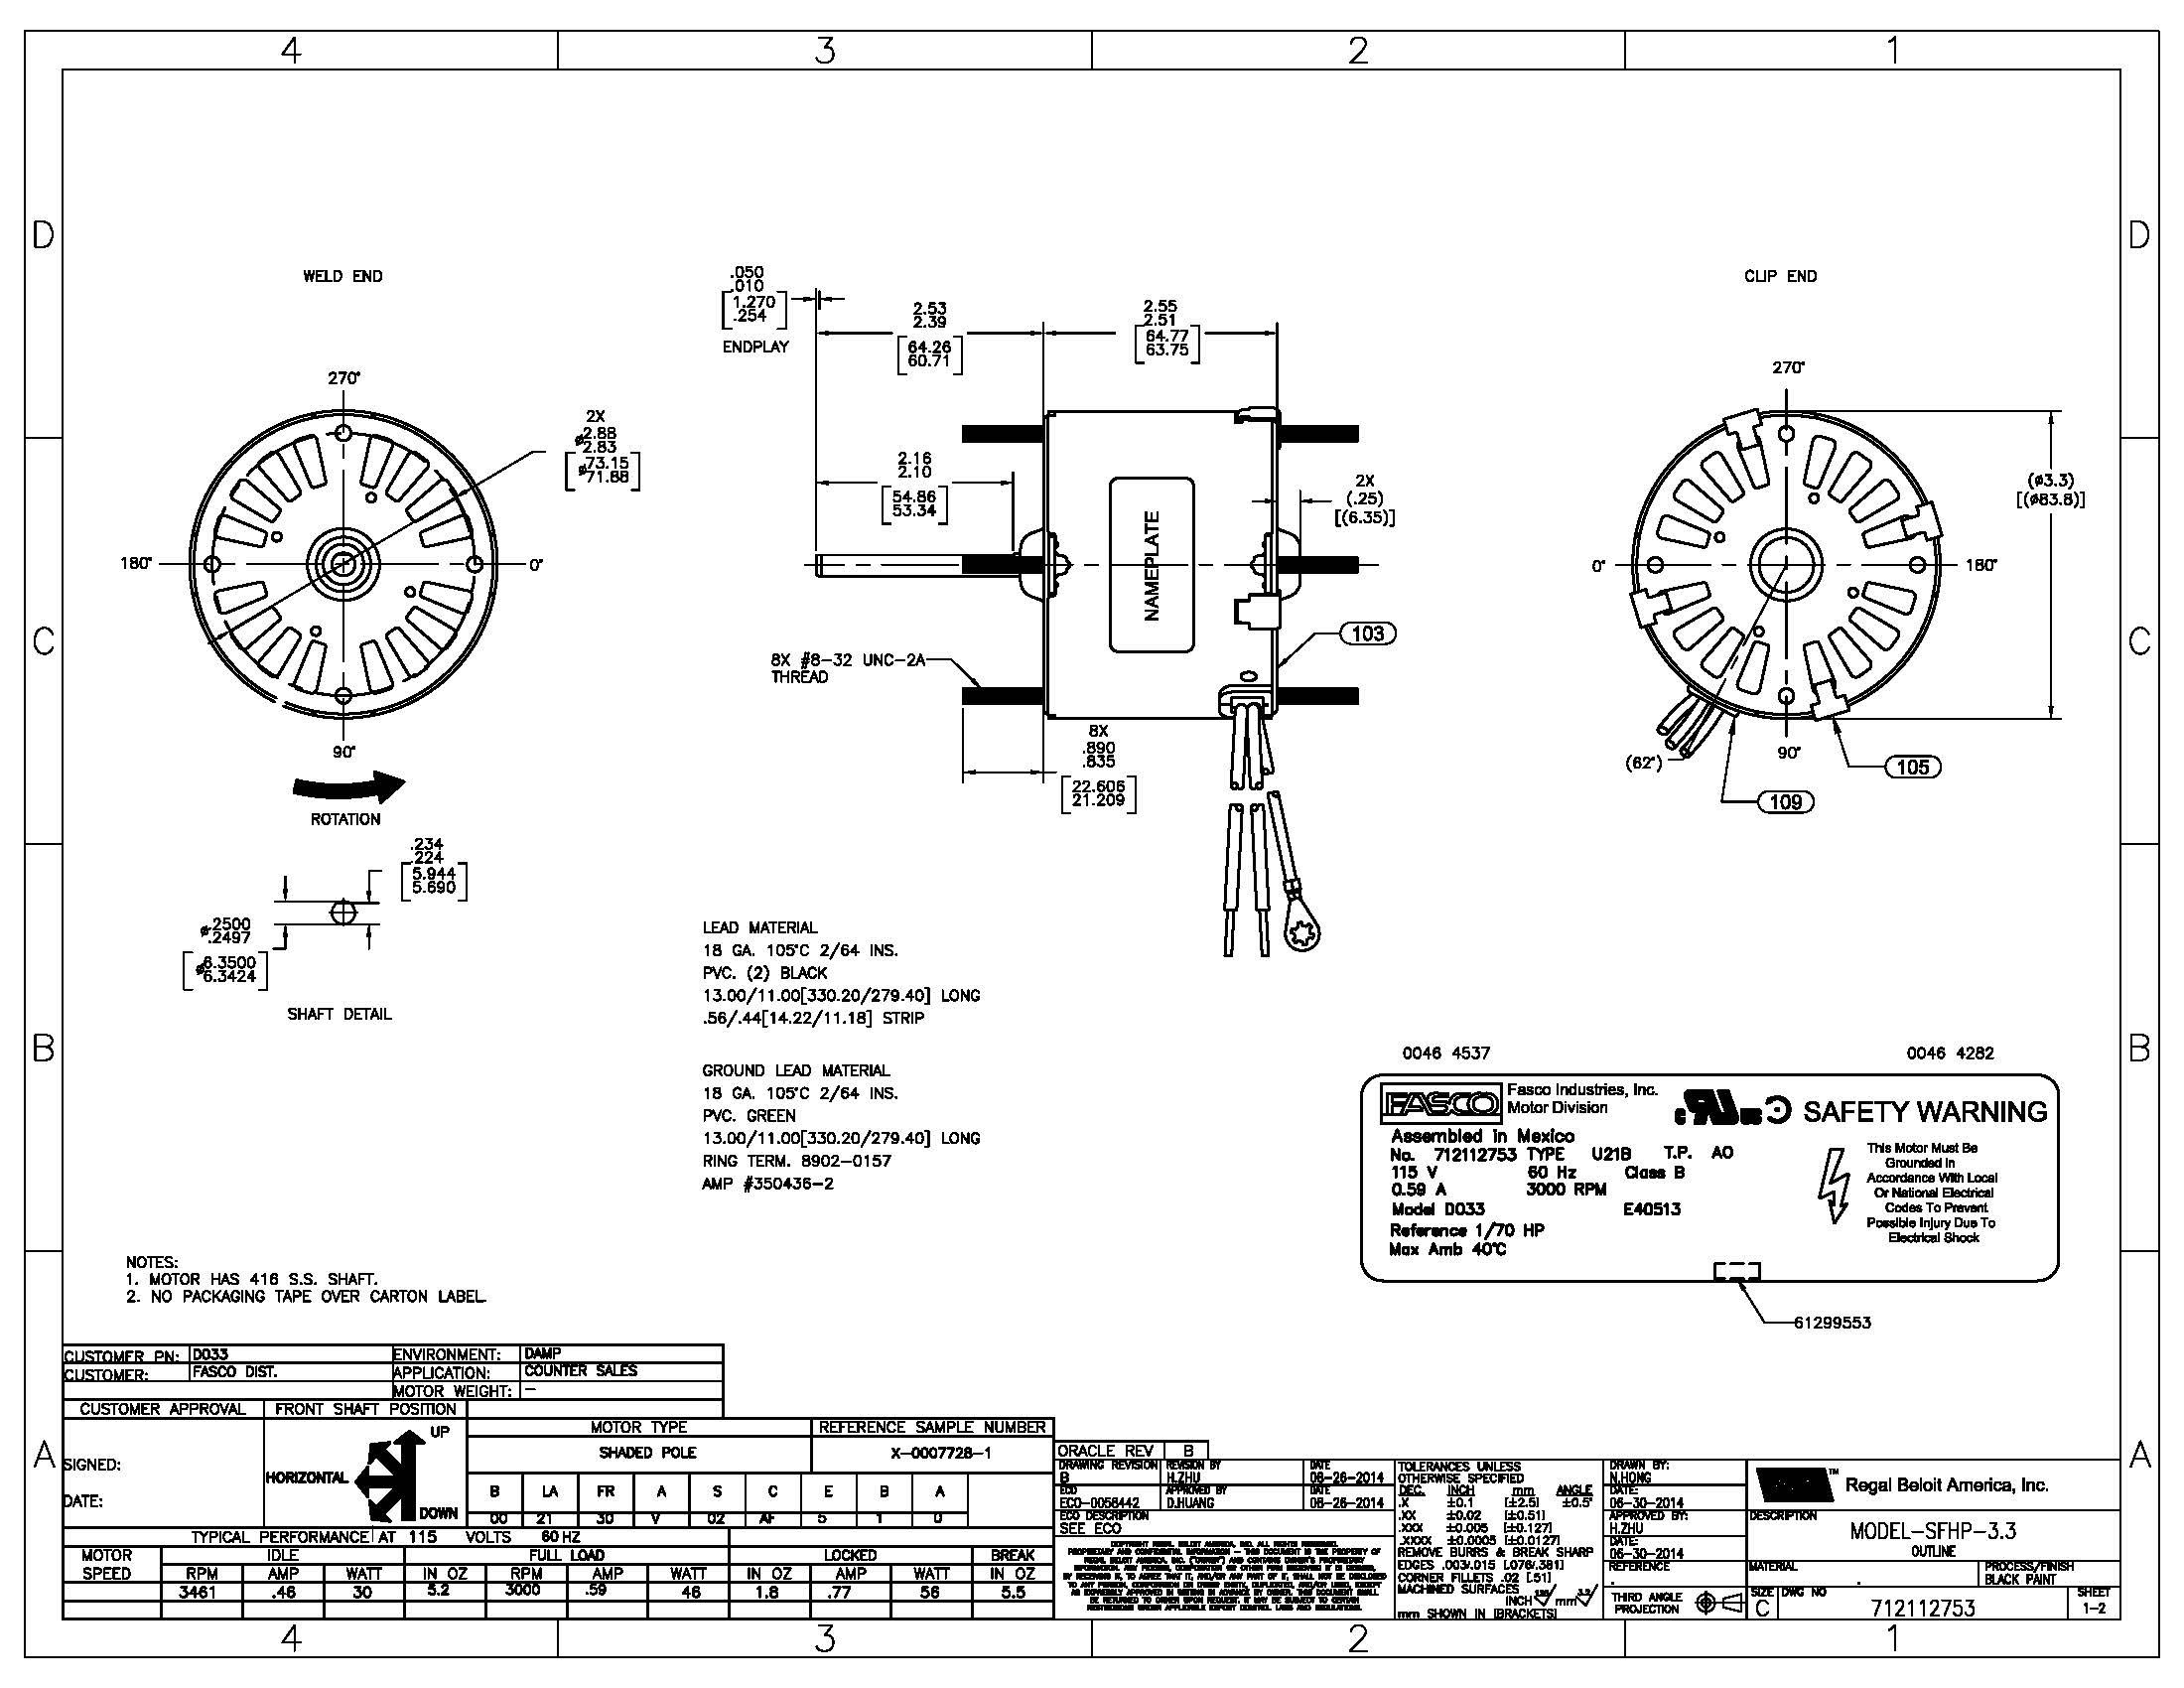 35 Mars Motors 10585 Wiring Diagram